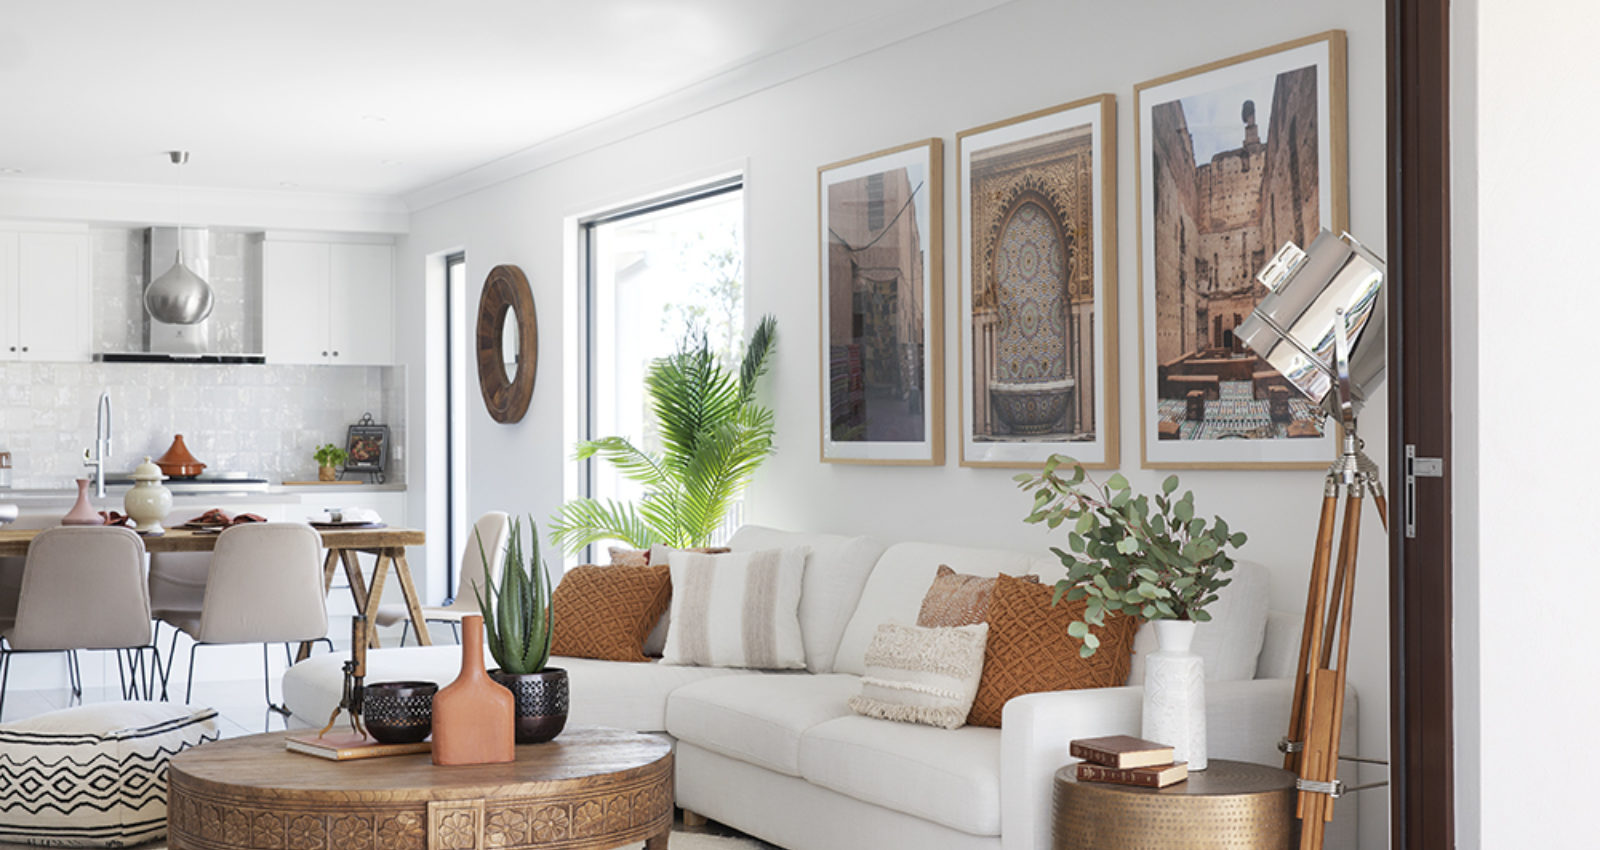 Transform your home into a bohemian wonderland